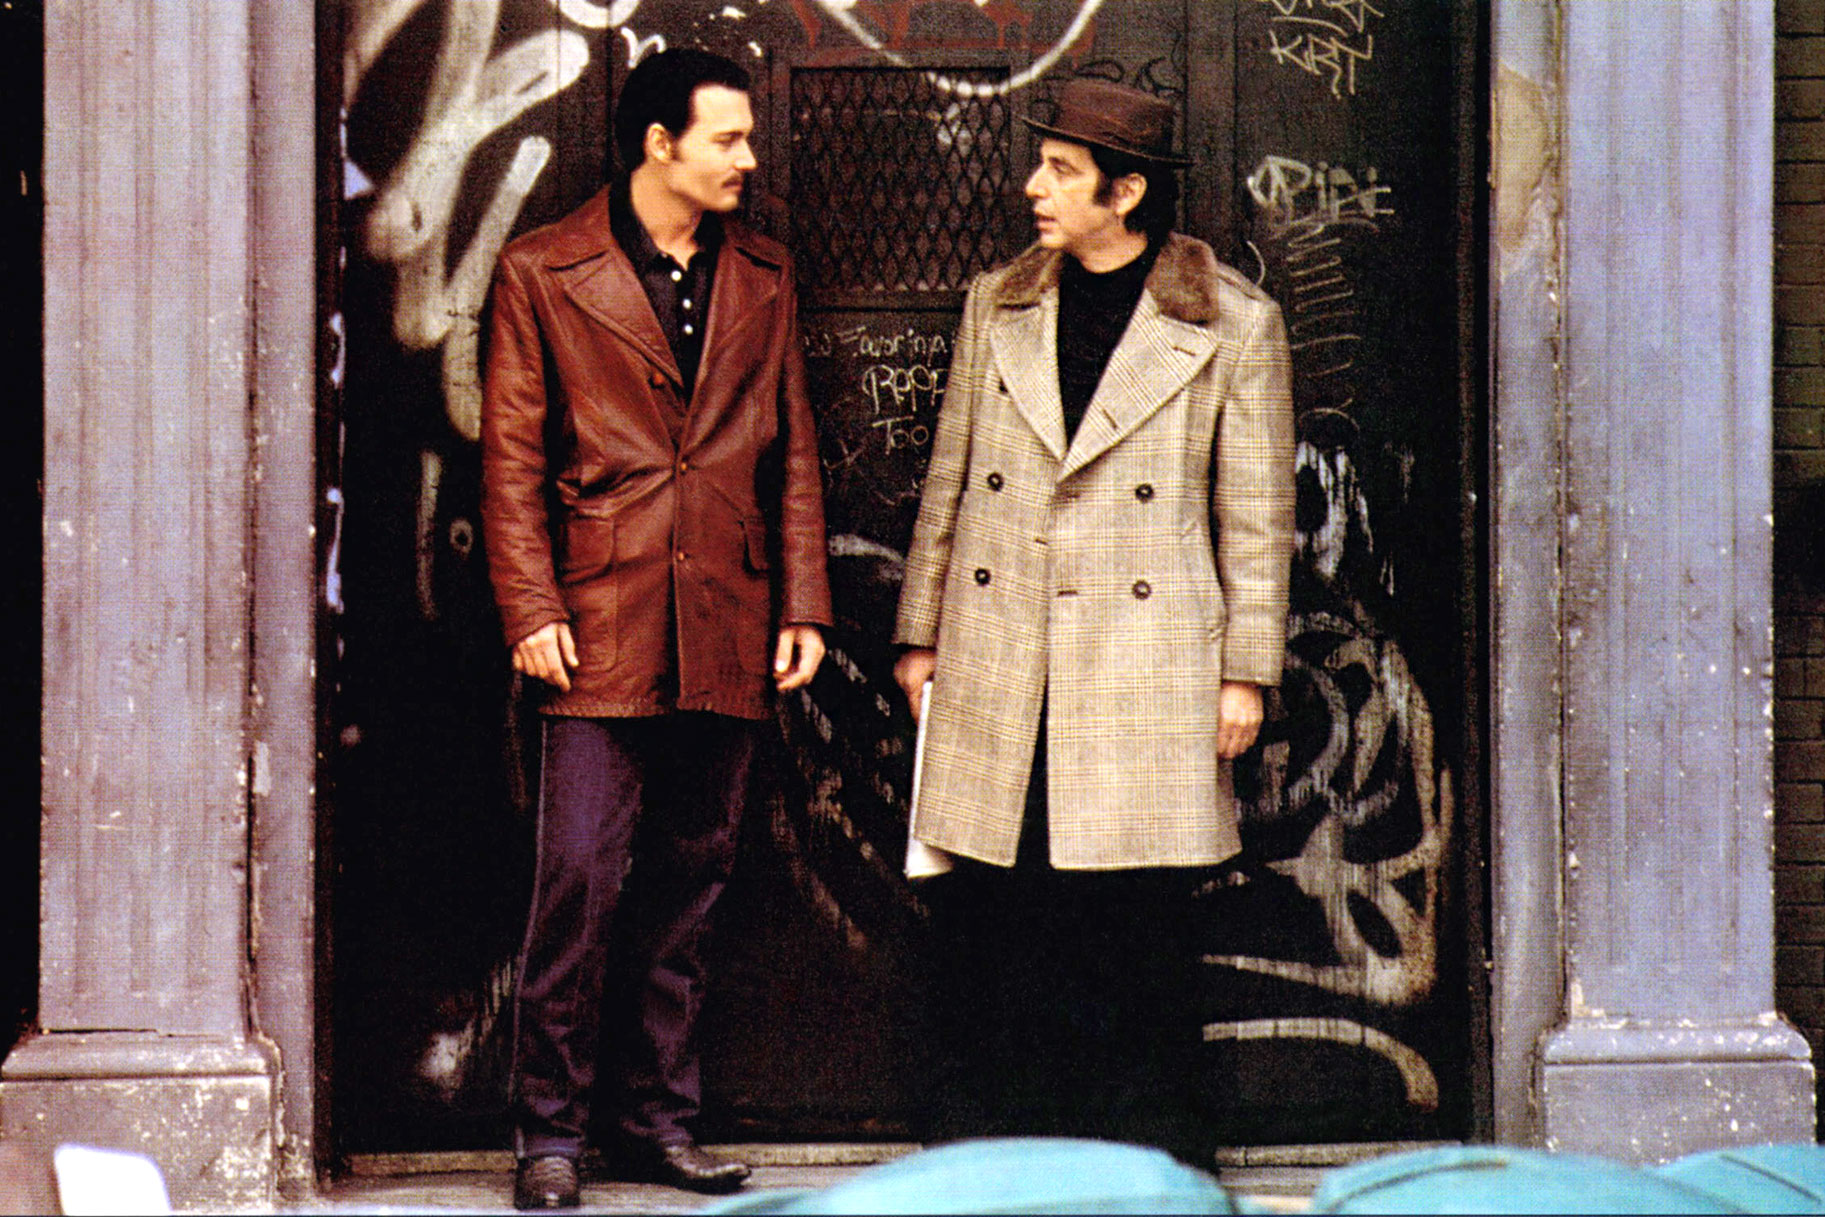 """Donnie Brasco came out and you thought, """"Hey, Johnny's an acting icon too!"""""""